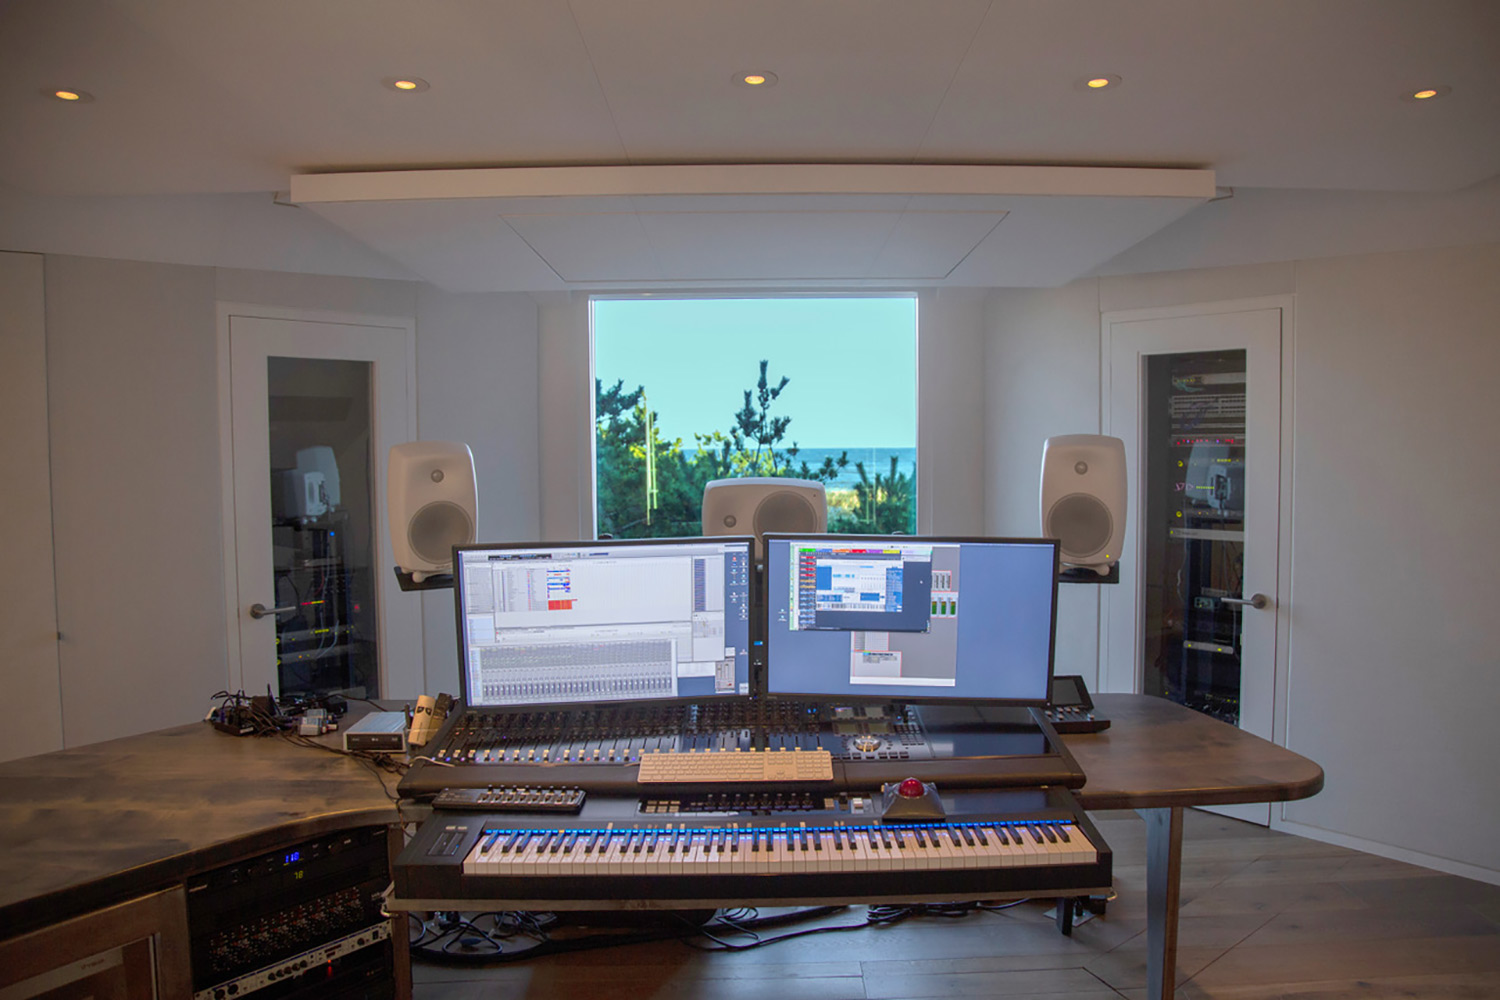 World-renown composer for films Carter Burwell returned to John Storyk and commissioned WSDG a new recording studio at his ultra modern Maziar Behrooz-designed home. WSDG-designed control room front view.